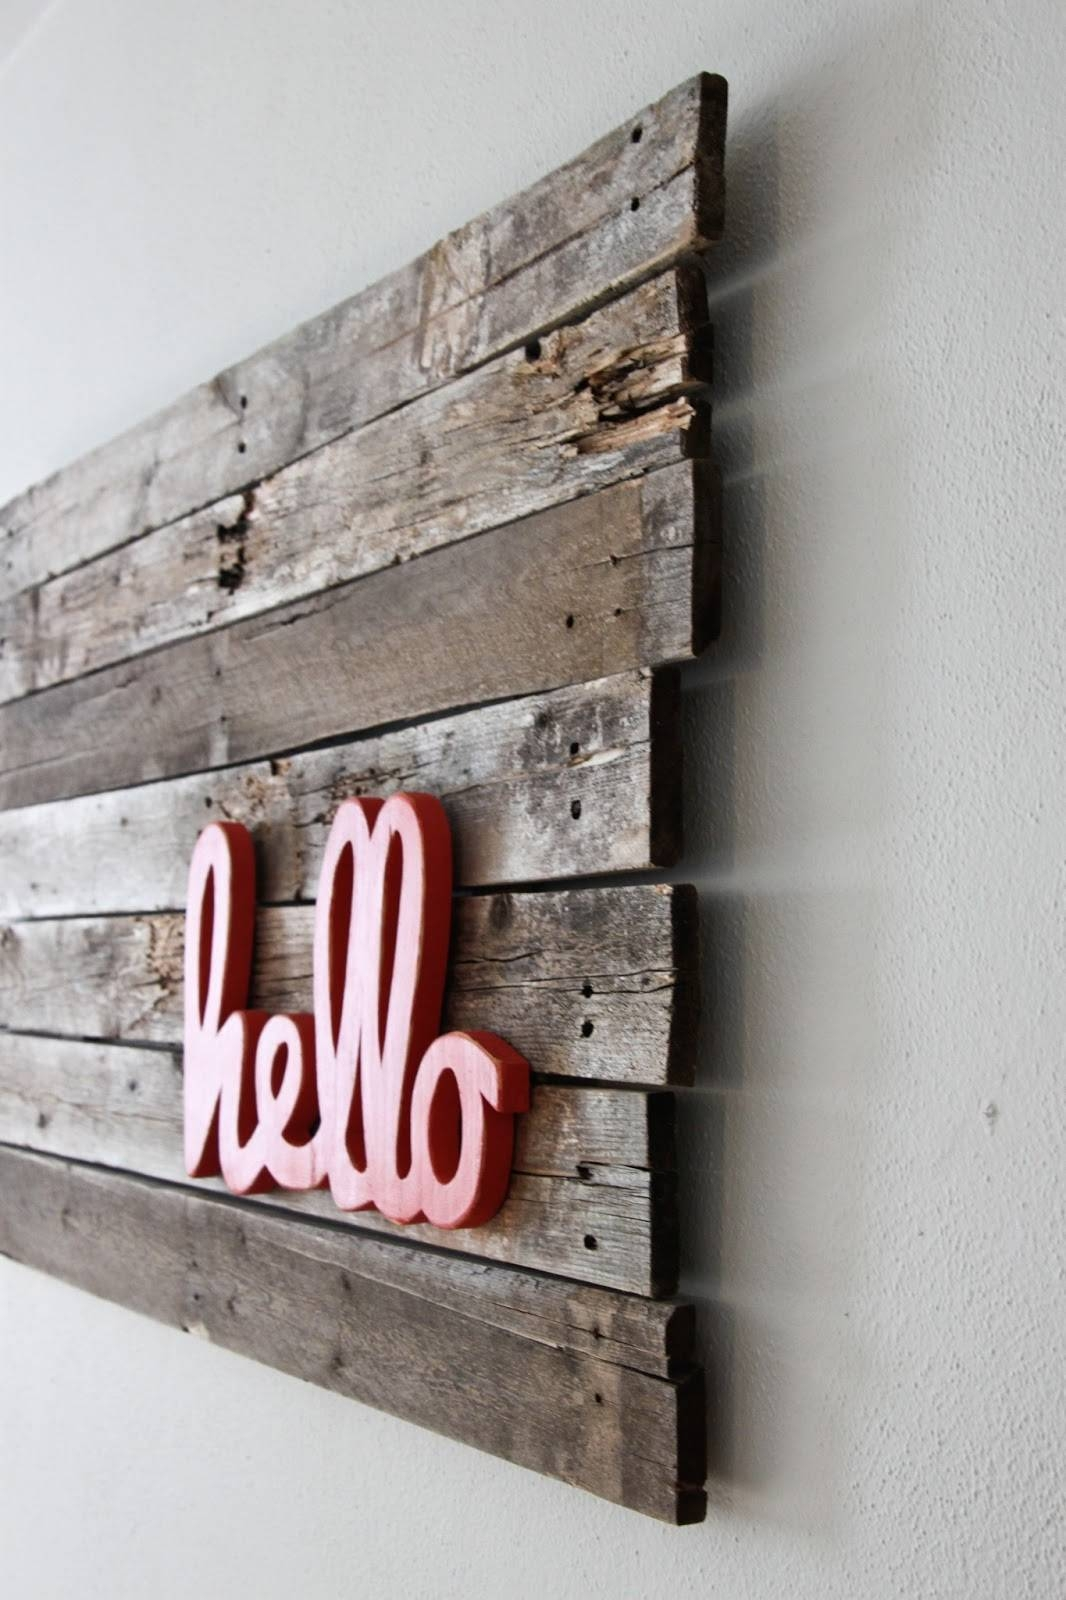 Wall Art Words Wooden Saw Word Like – Dma Homes | #89896 Pertaining To Latest Wood Word Wall Art (View 2 of 22)